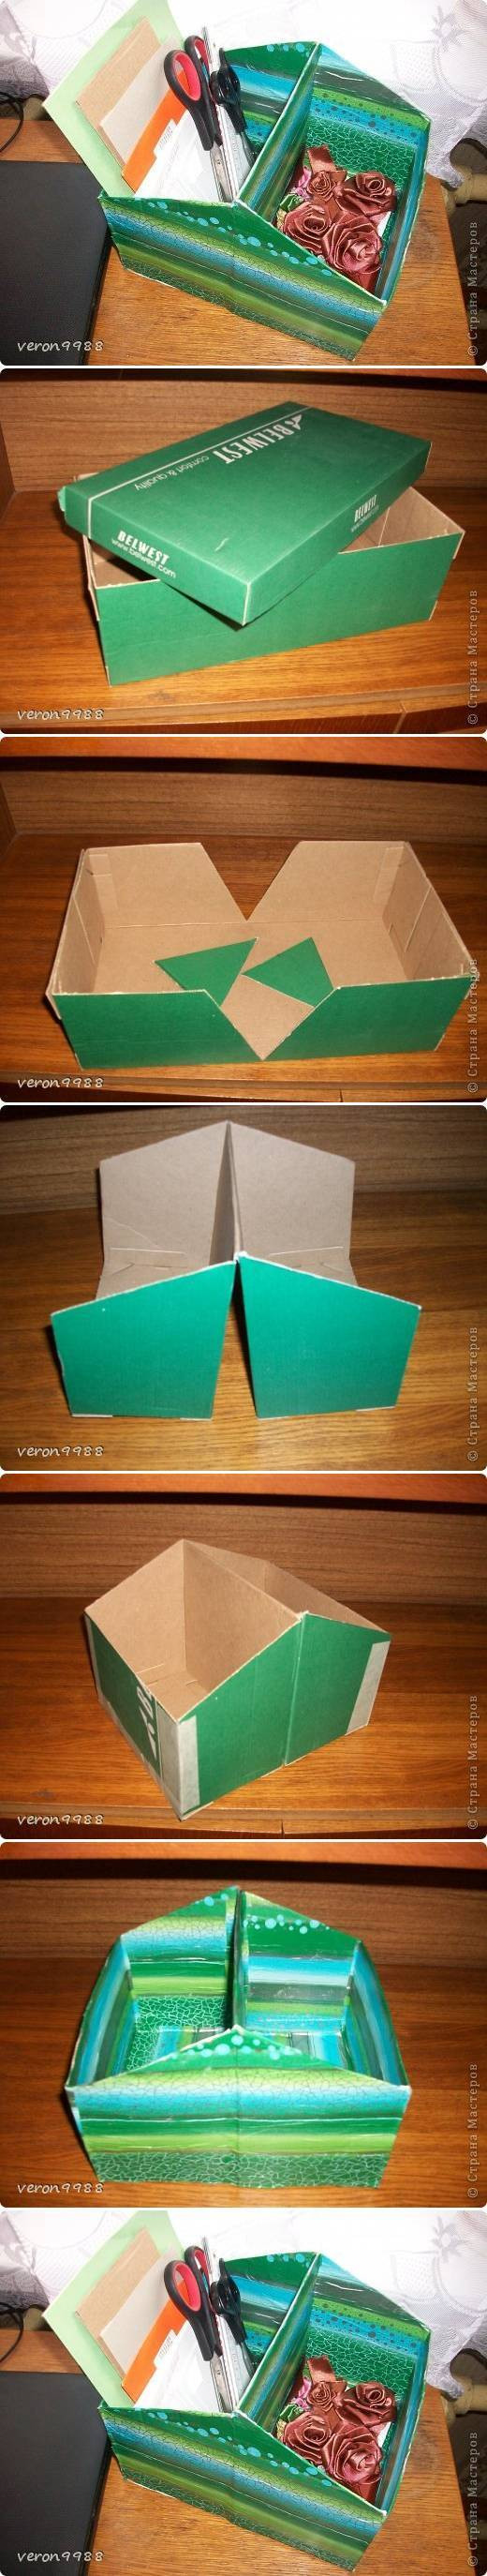 Best ideas about DIY Shoe Box Desk Organizer . Save or Pin DIY Shoe Box Organizer DIY Projects Now.